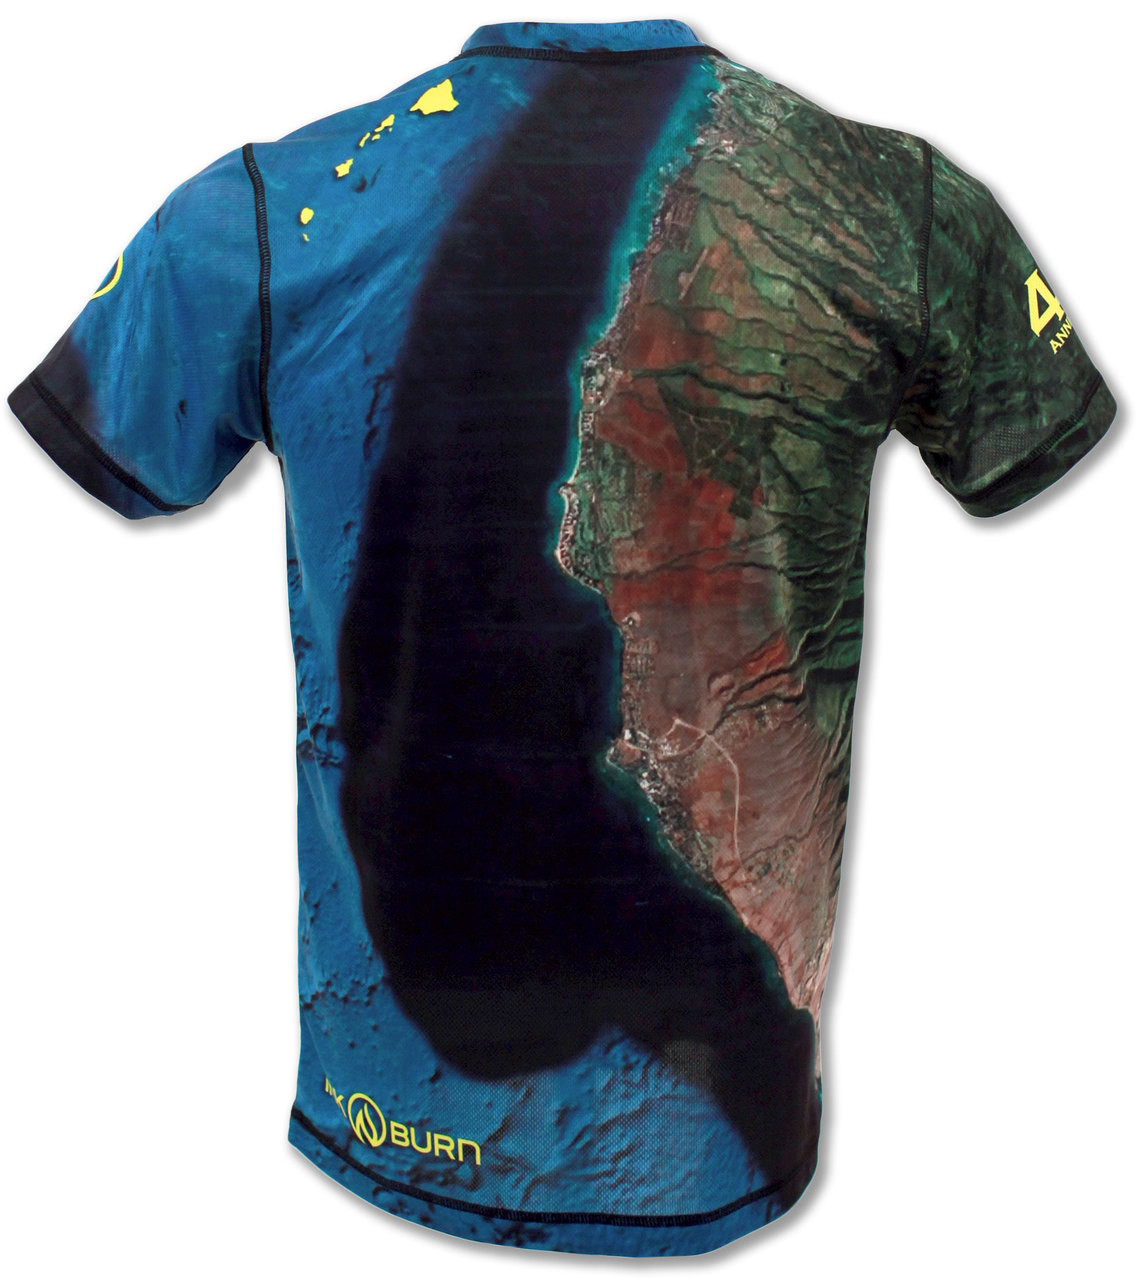 INKnBURN Men's Maui Marathon Tech Shirt Back